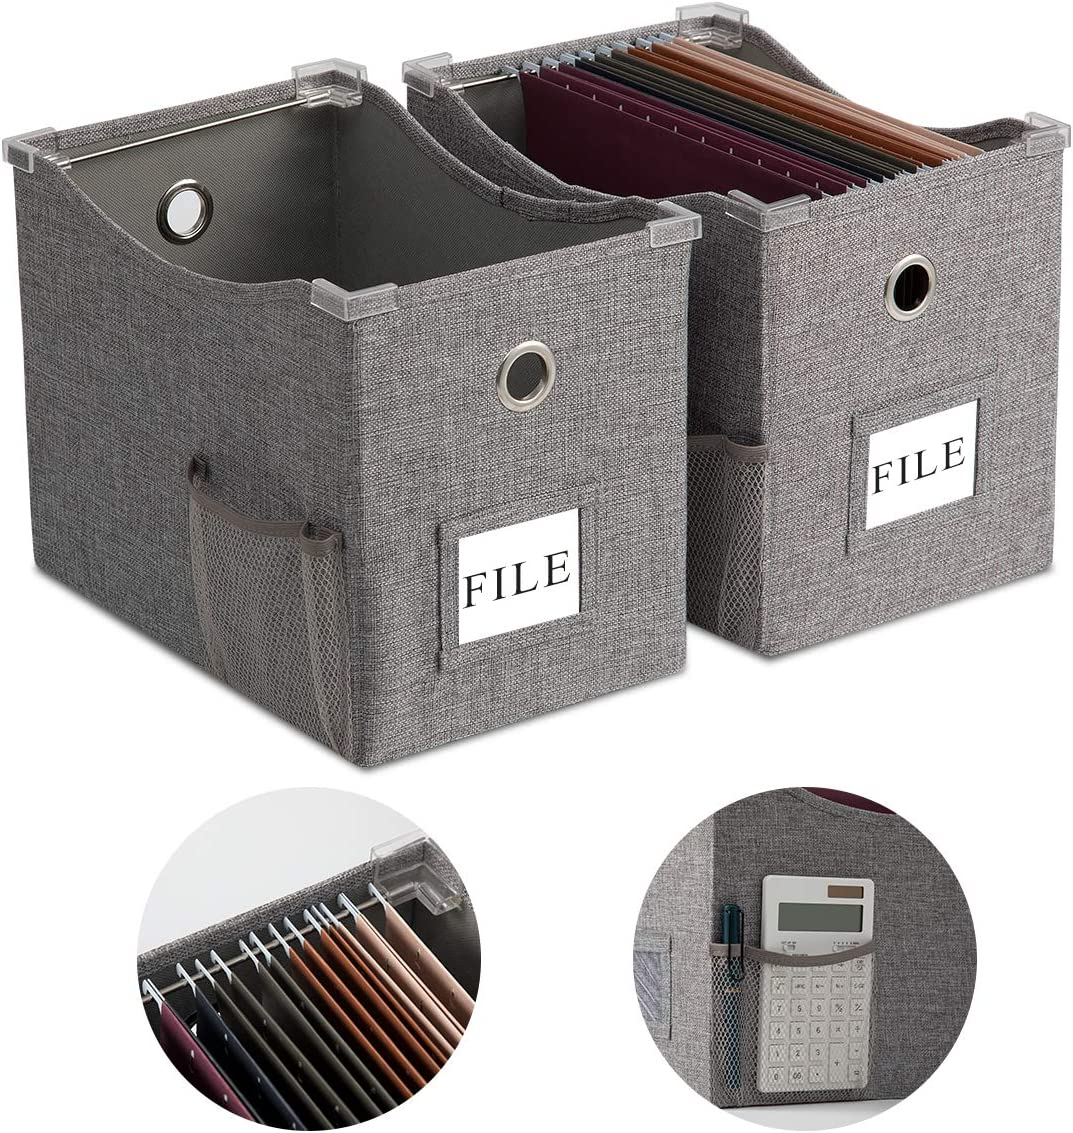 Linen File Boxes with Metal Sliding Rail For Letter Size [2pack] File Storage Box with Extra Pocket Storage Collapsible Hanging File Storage Organizer Storage Filing Boxes File Organizer Box